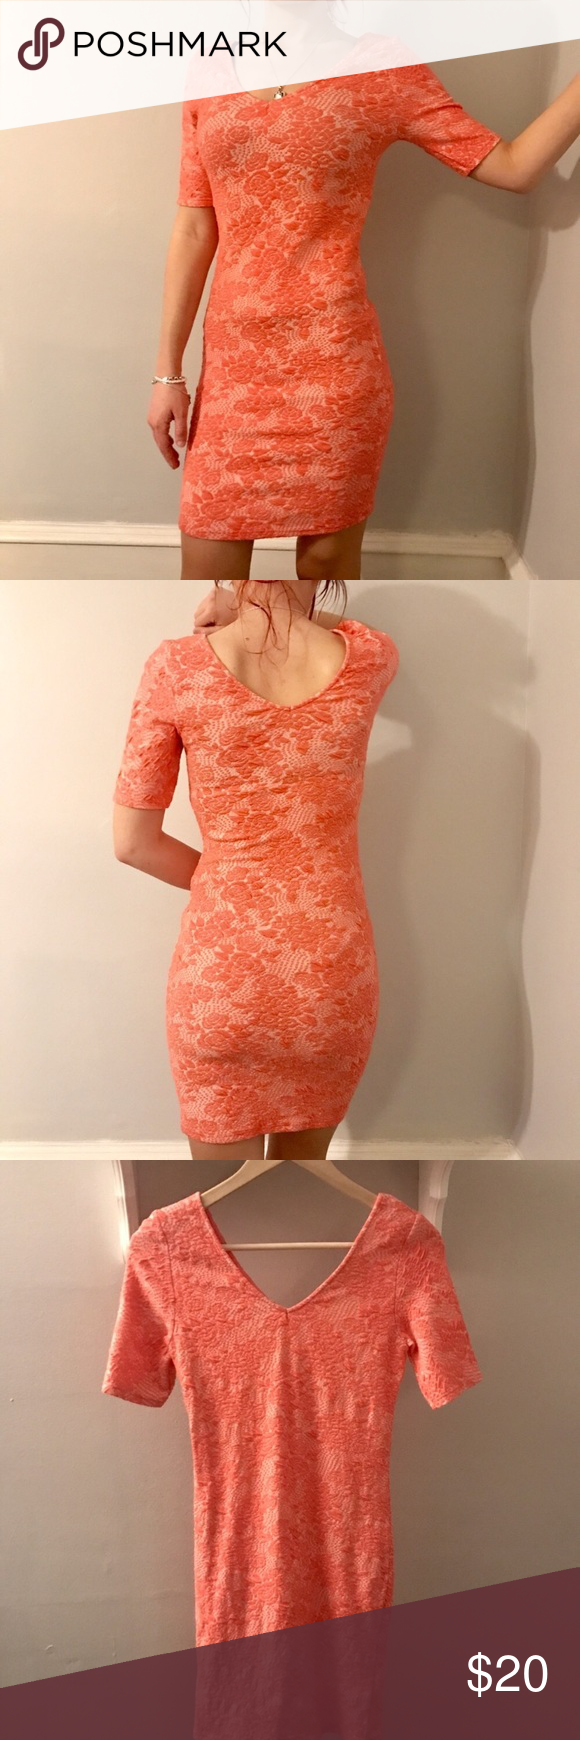 Pink dress topshop  Topshop bodycon dress Topshop tight fitted pink coral dress v ne